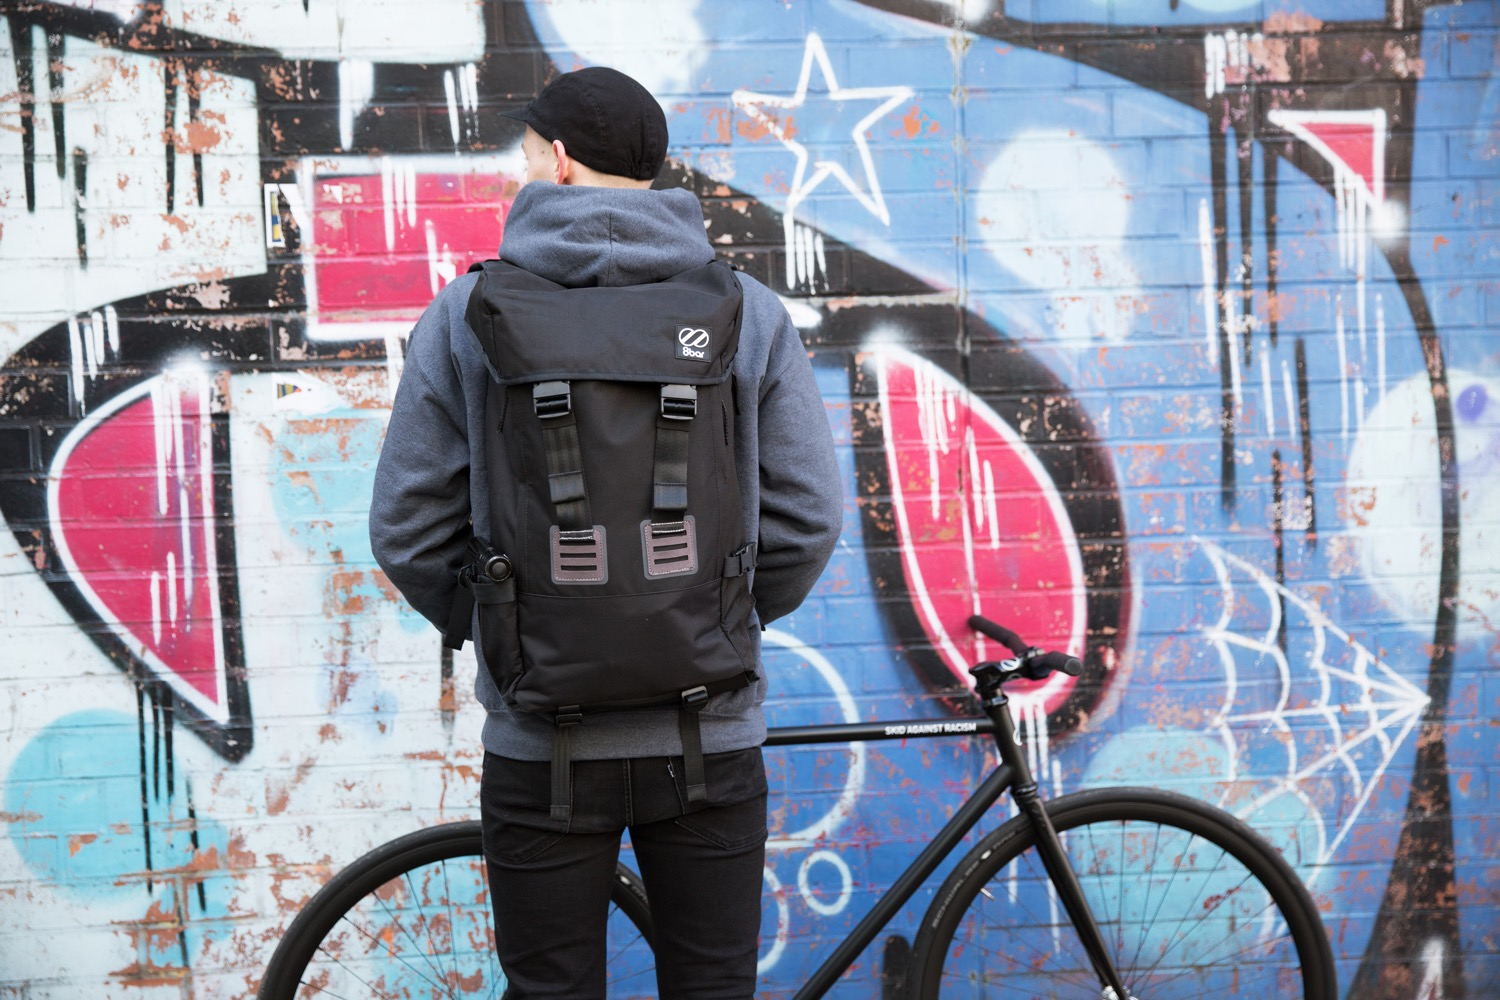 8bar-urban-backpack-city-bag-weekender-travel-bike-lr-39